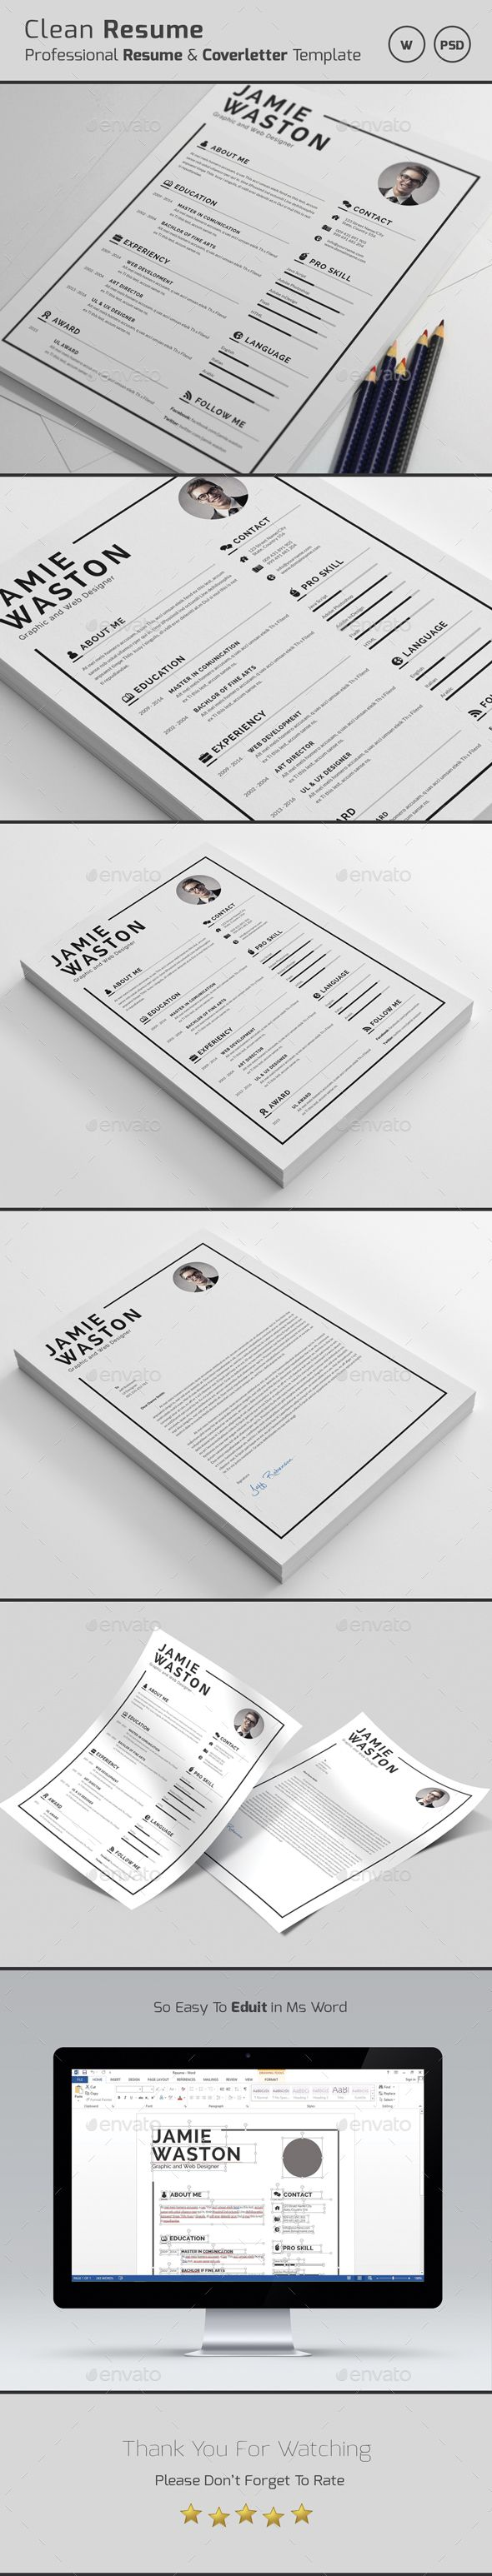 Graphic Design Resume Templates] Professional Resumecv And Cover ...